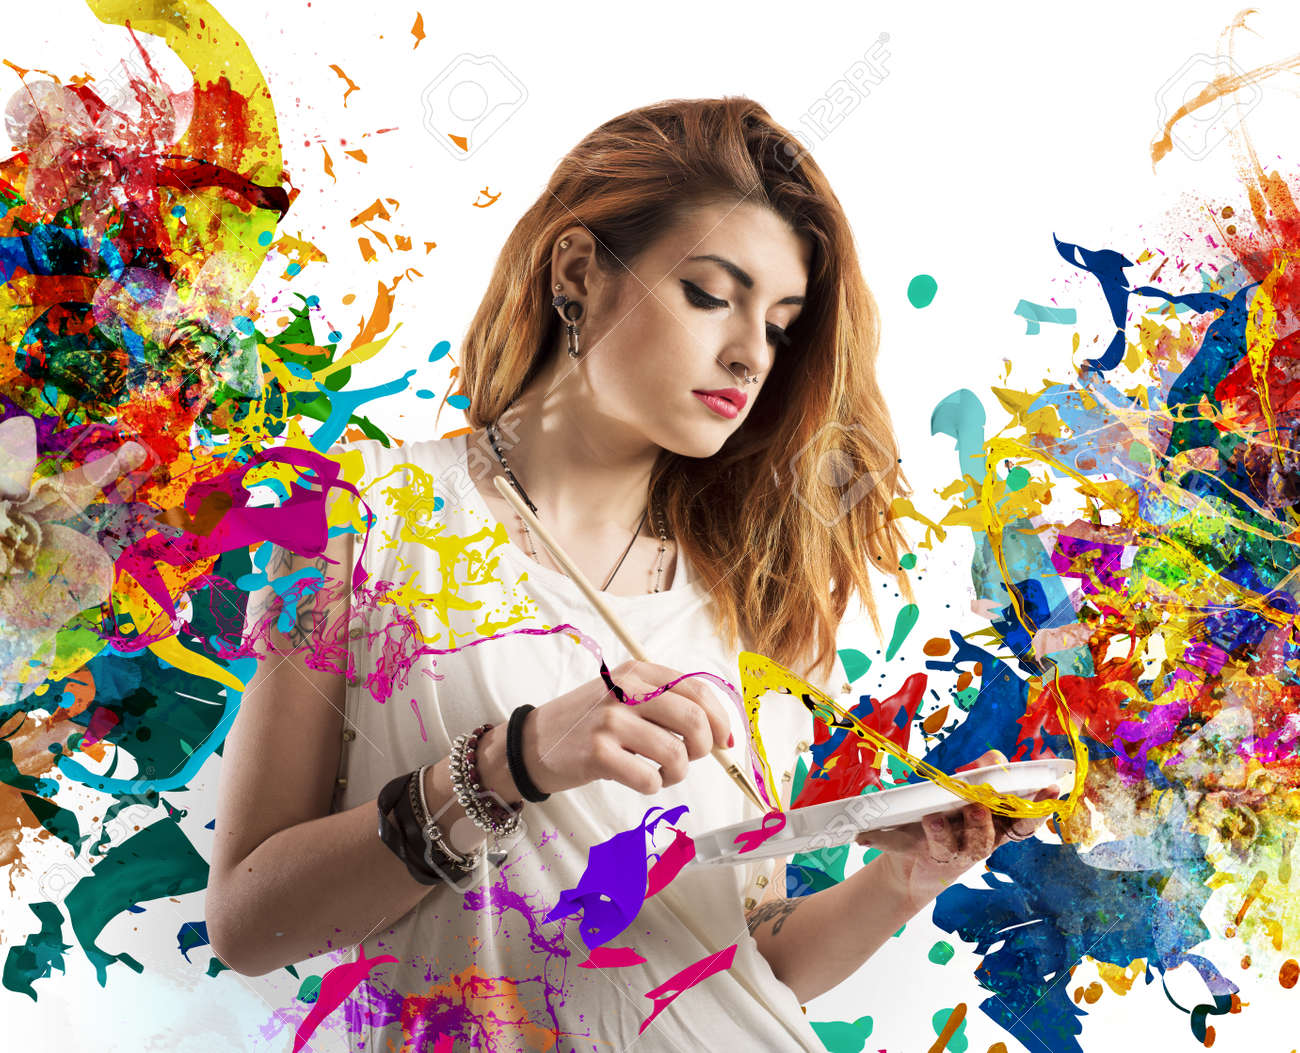 Creative woman painter with brush and palette - 47110849